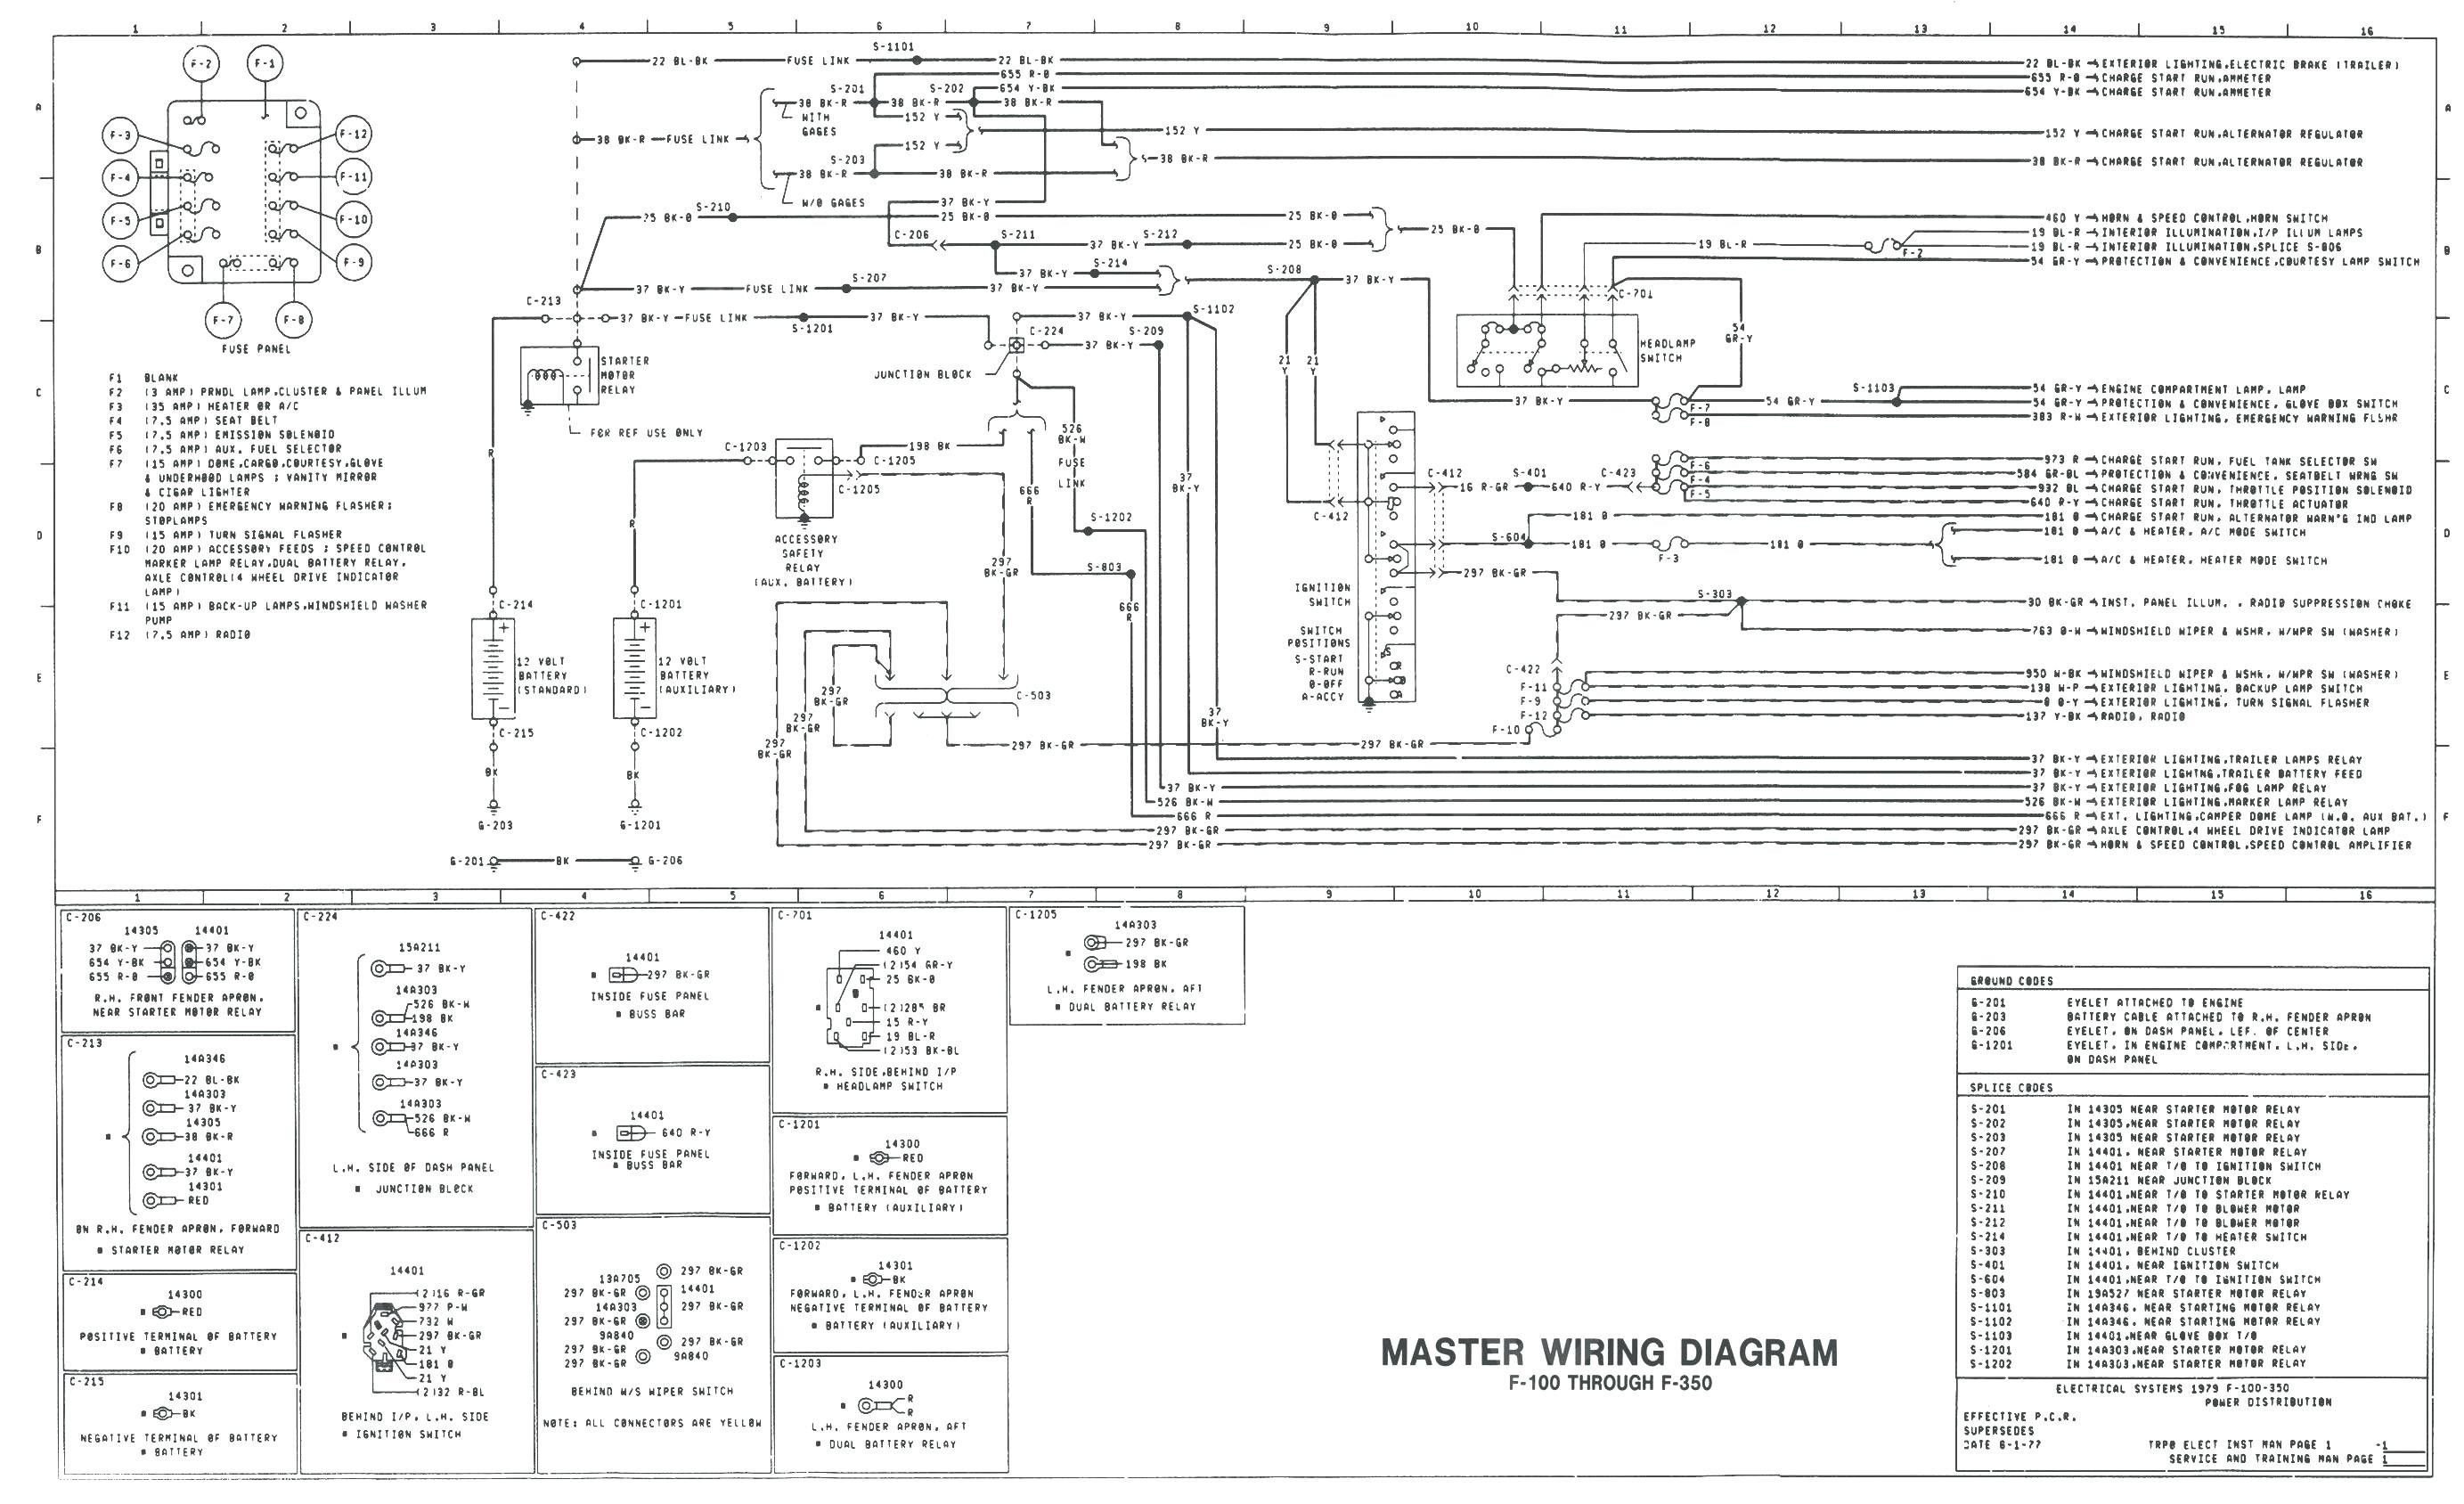 New Wiring Schedule Diagram Wiringdiagram Diagramming